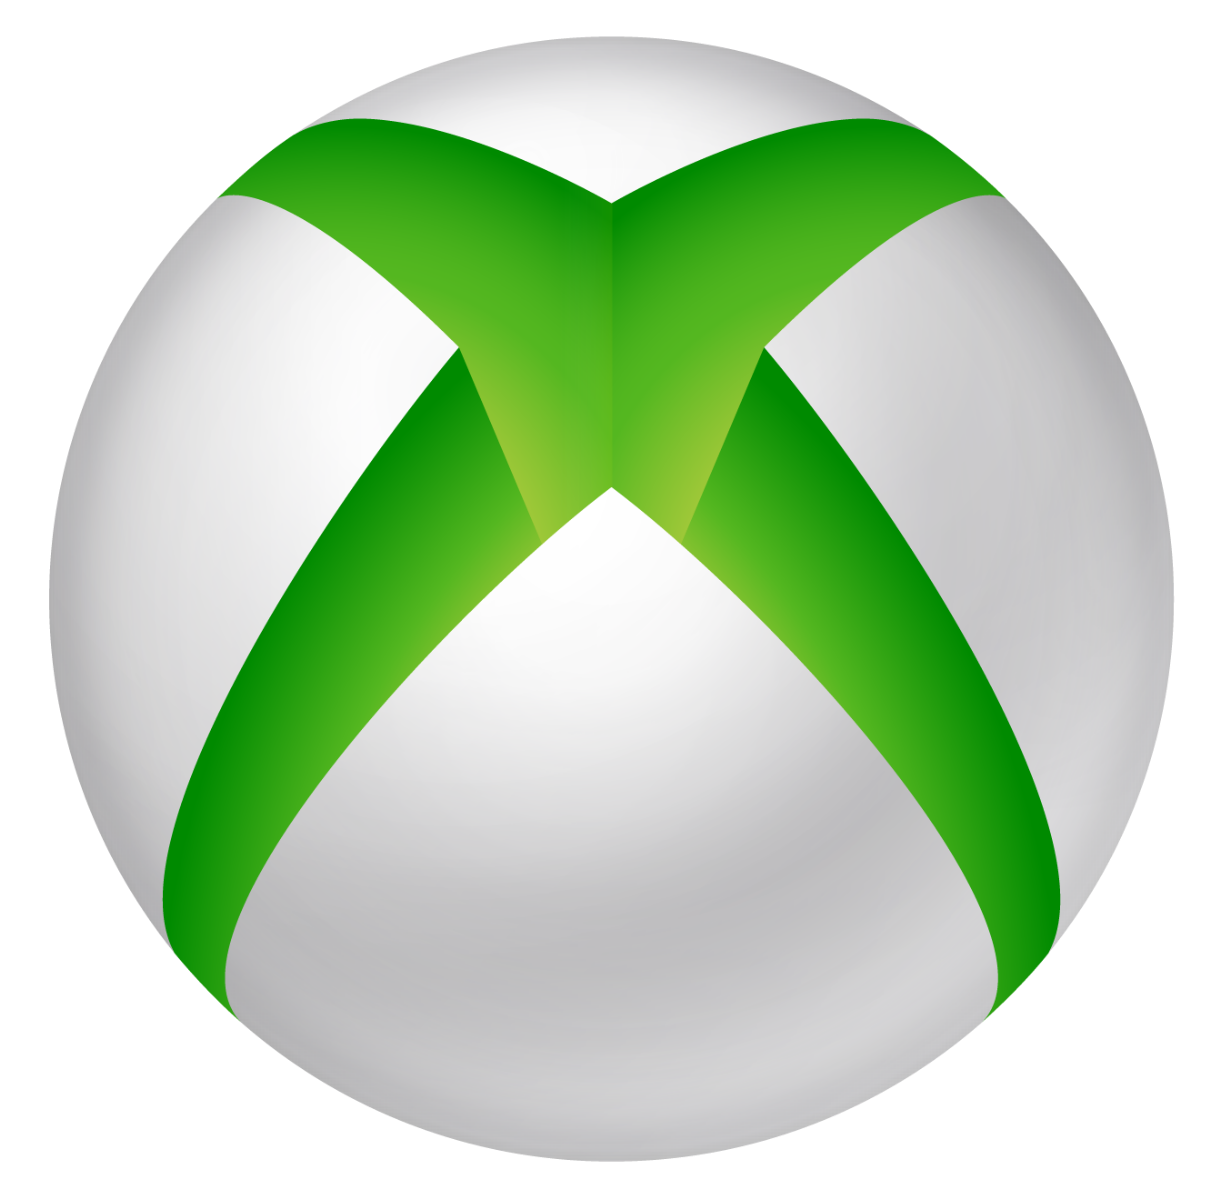 xbox png images free download, xbox gamepad png